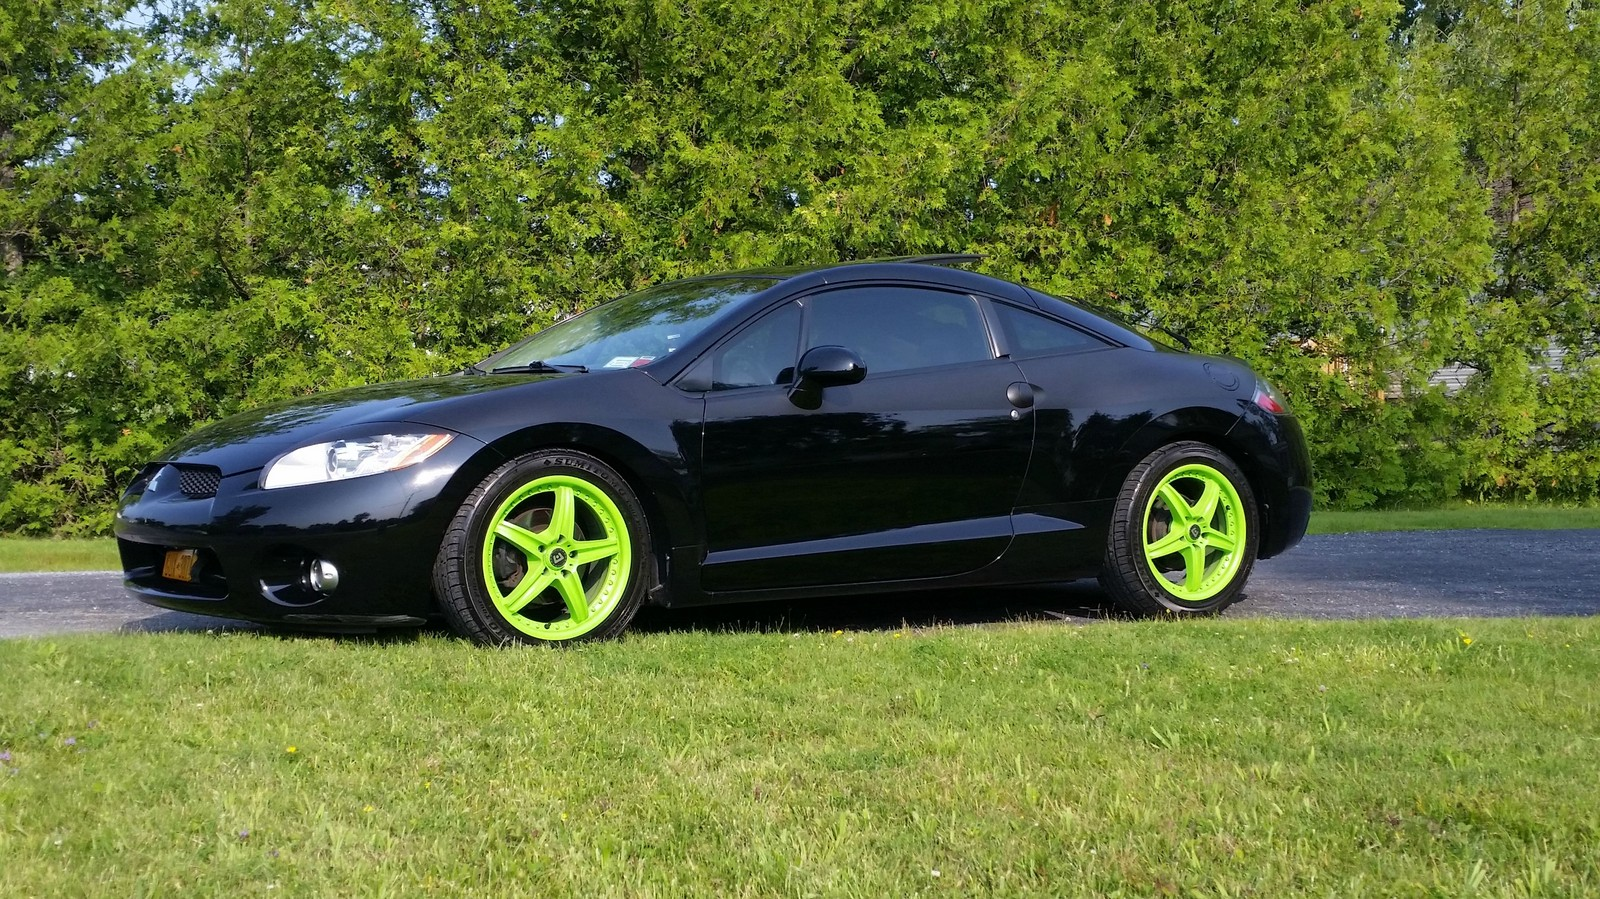 Black 2006 Mitsubishi Eclipse GT 6 Speed MT